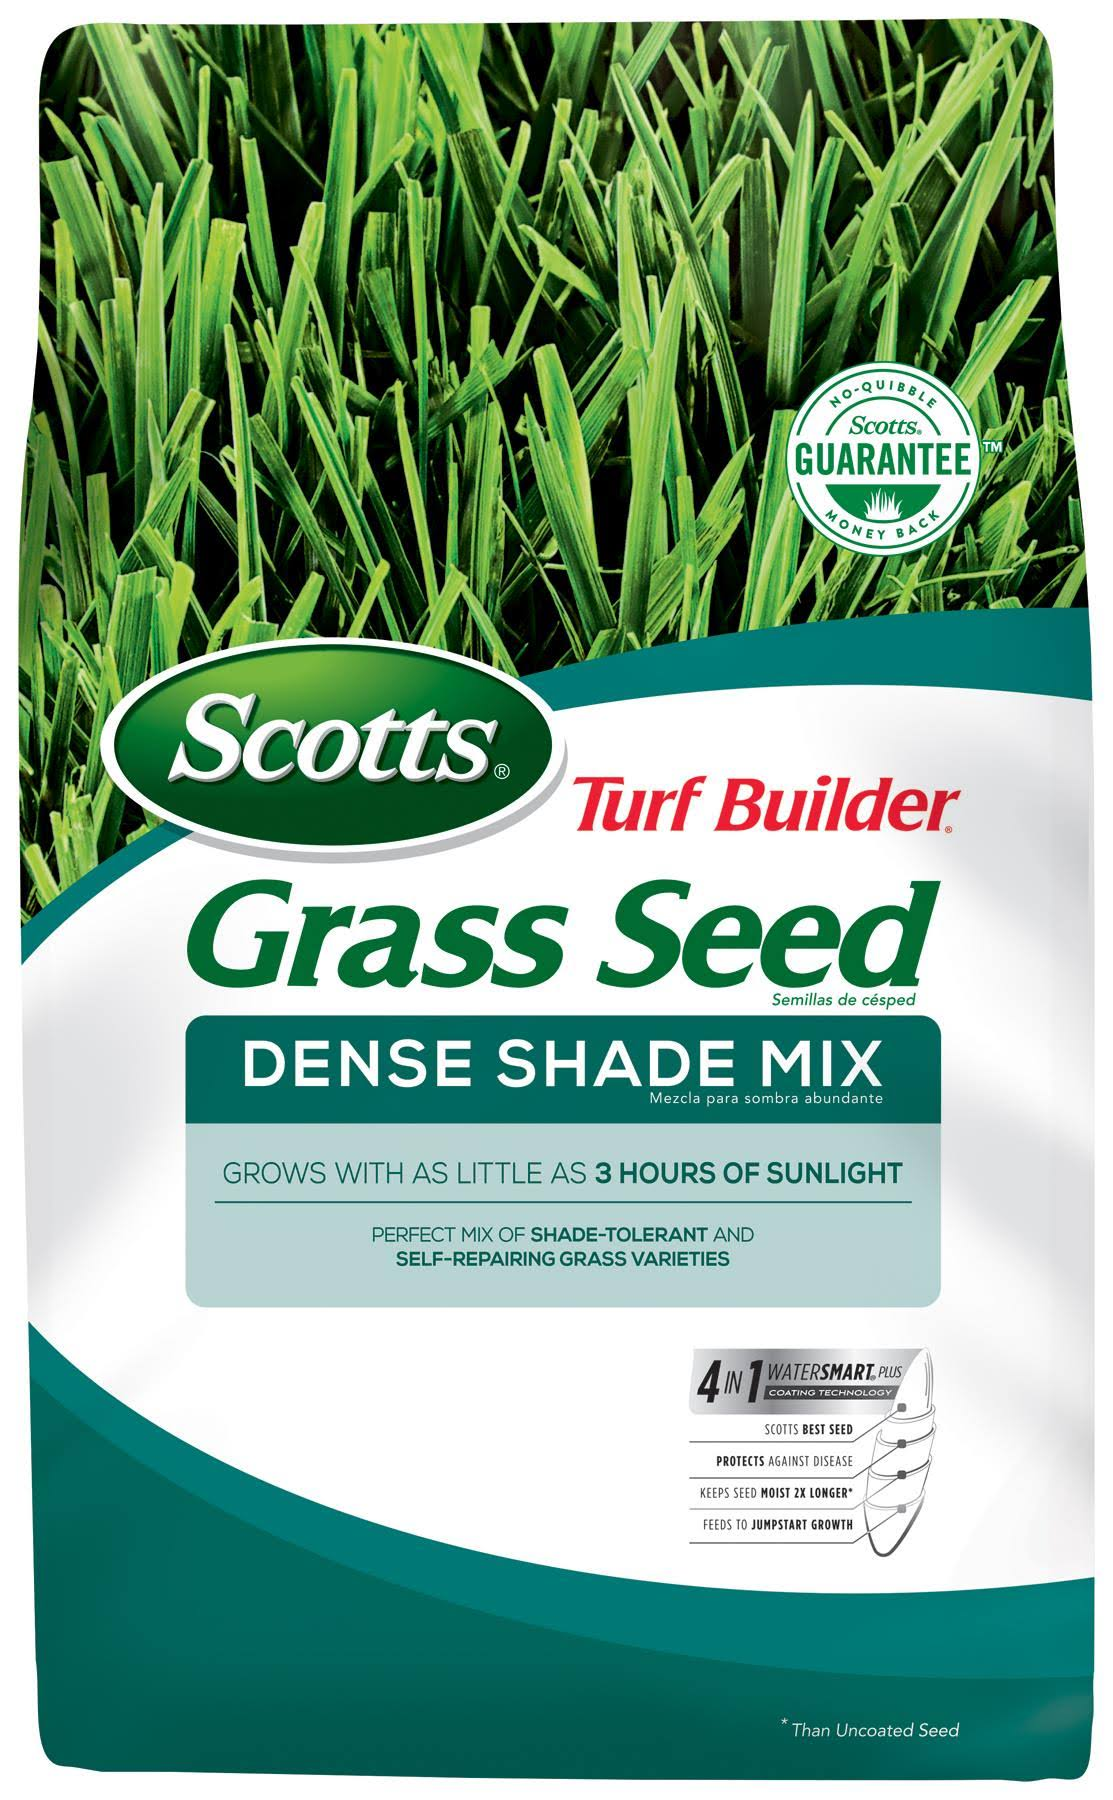 Scotts Turf Builder Grass Seed - Dense Shade Mix, 7lbs